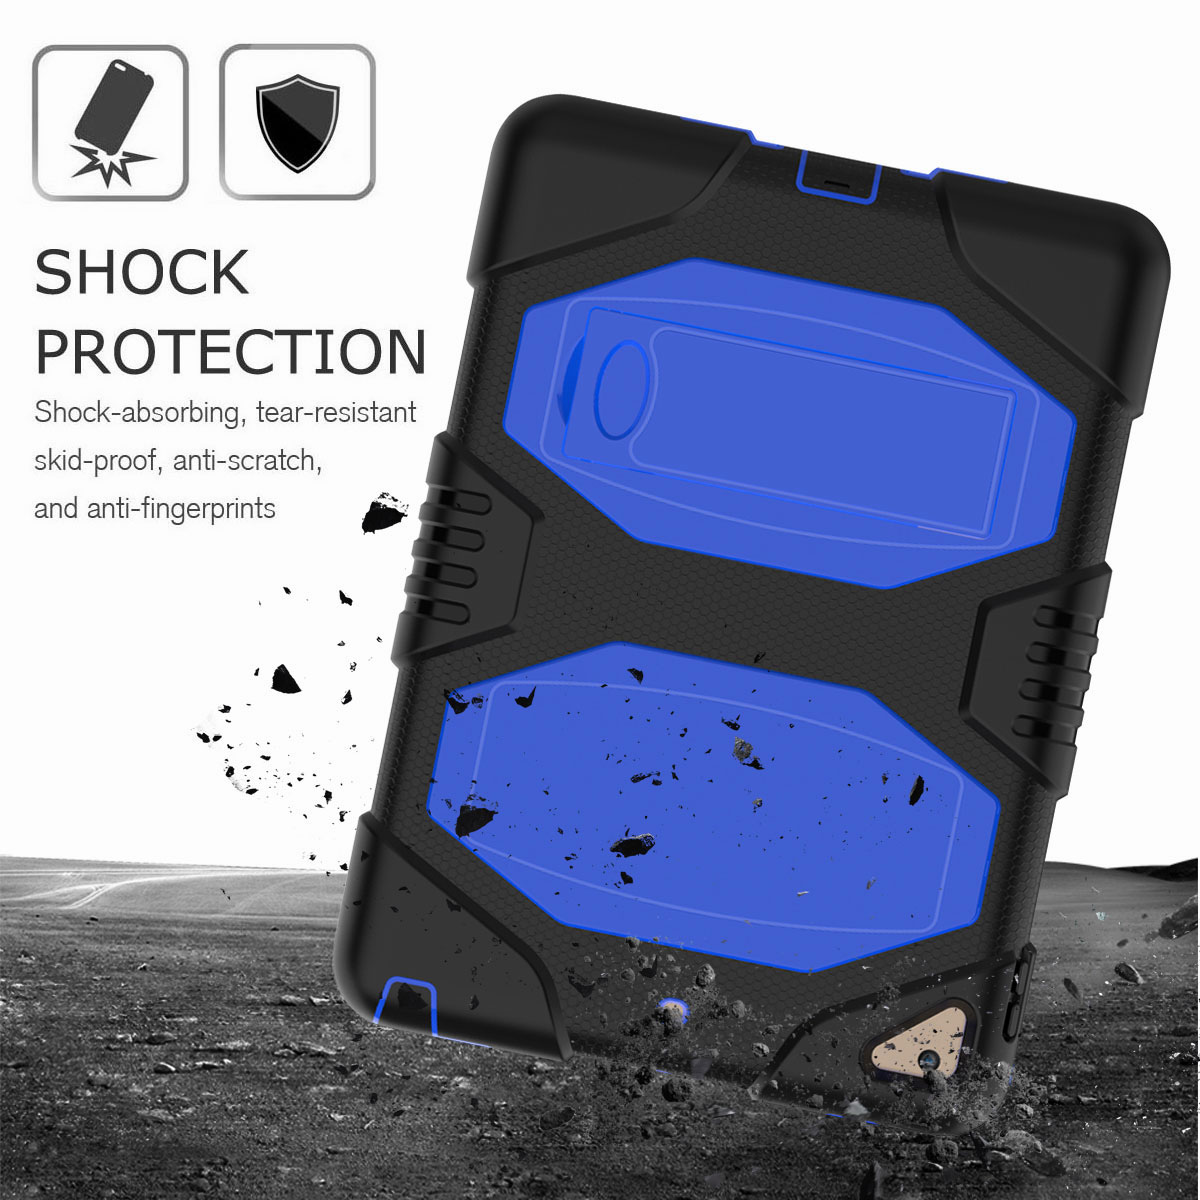 Hybrid-Rubber-Heavy-Duty-Shockproof-Case-Cover-For-iPad-9-7-6th-Generation-2018 thumbnail 30